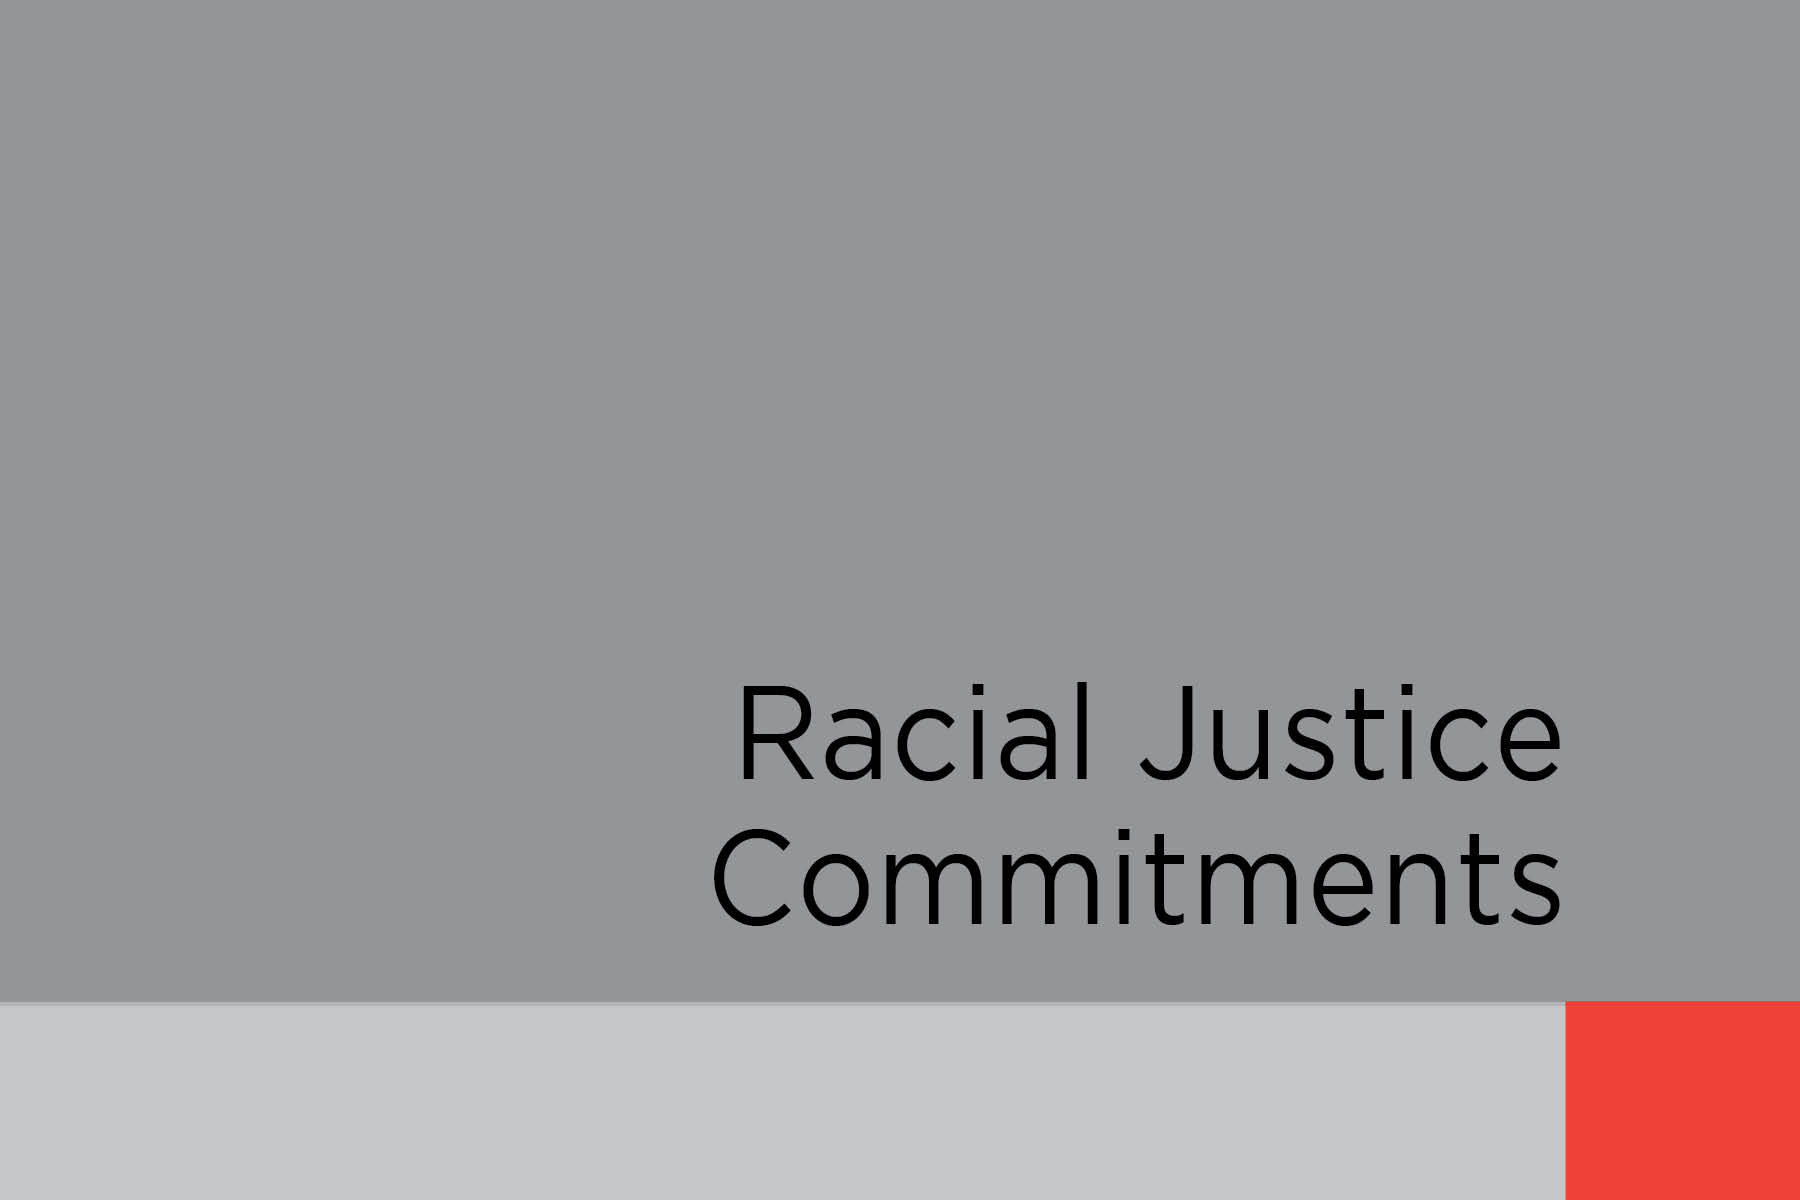 Racial Justice Commitments graphic